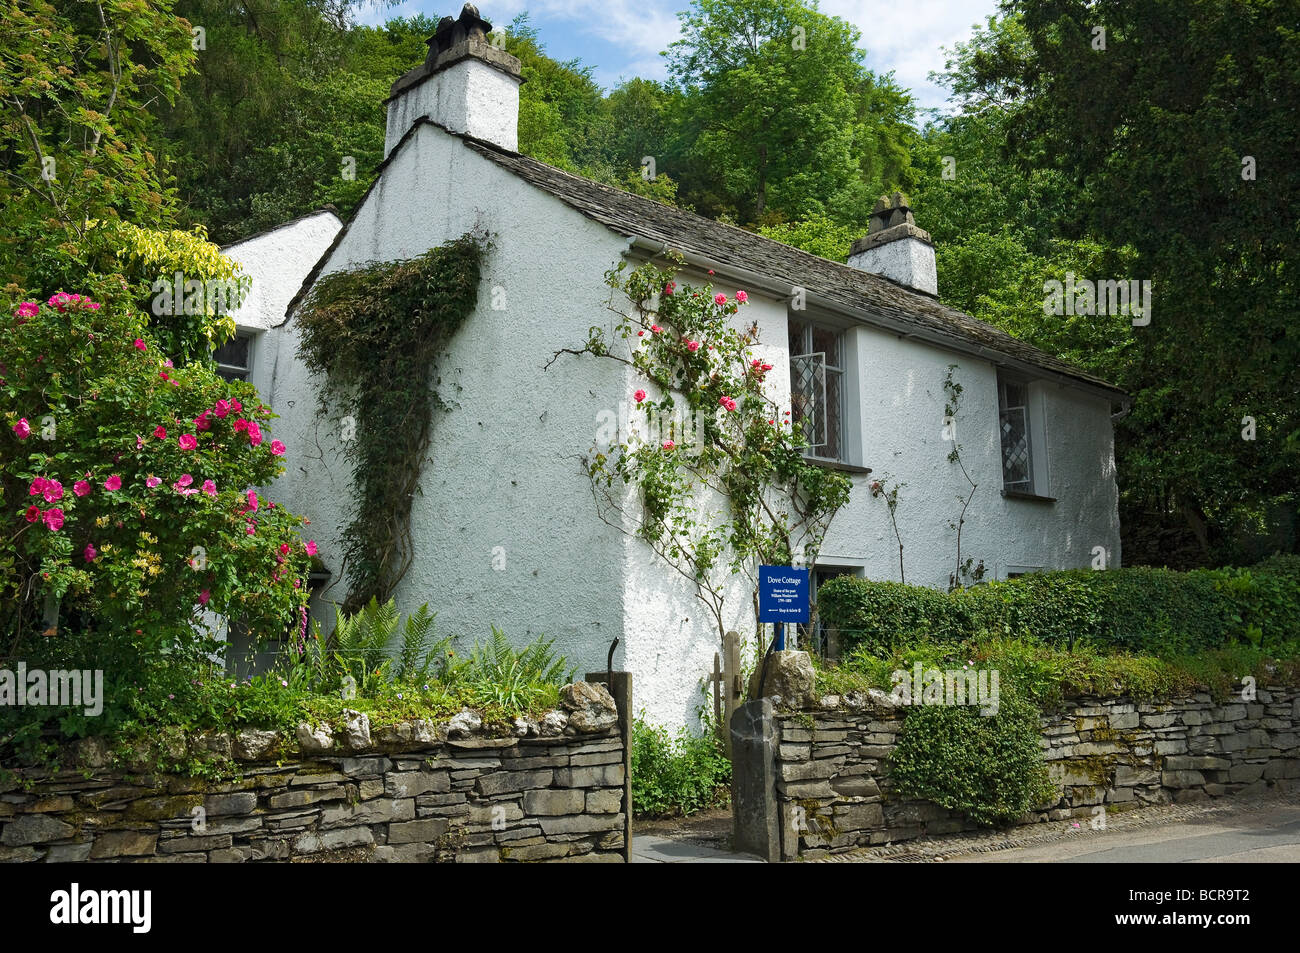 Dove Cottage Grasmere Cumbria England UK United Kingdom GB Great Britain - Stock Image